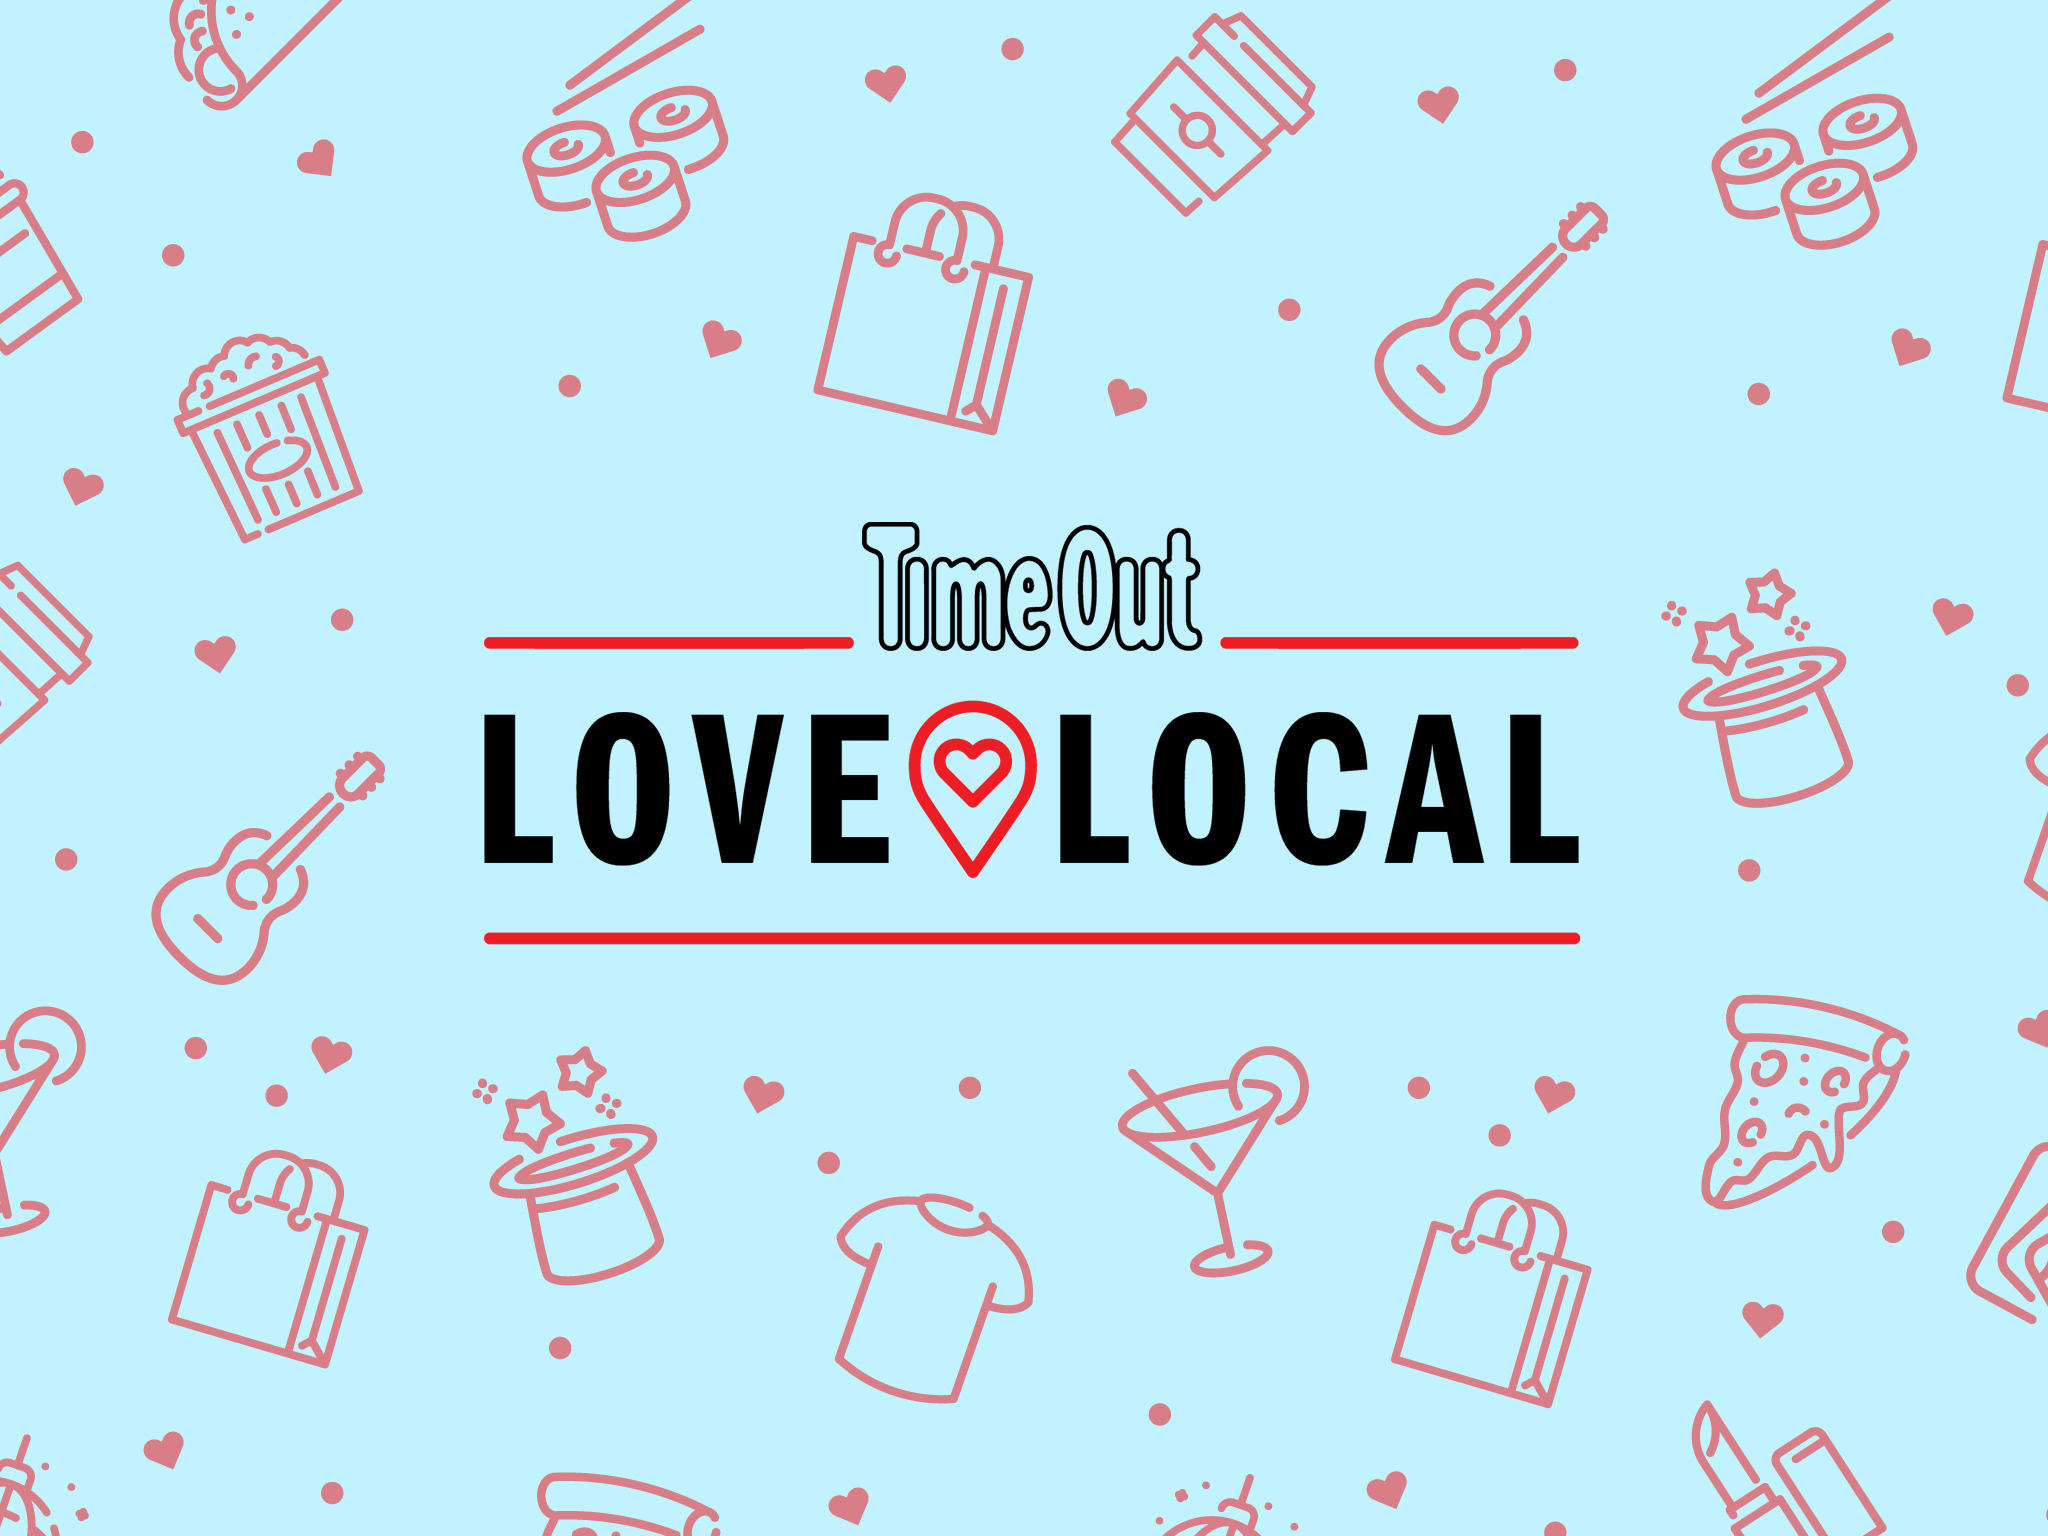 Time Out Love Local